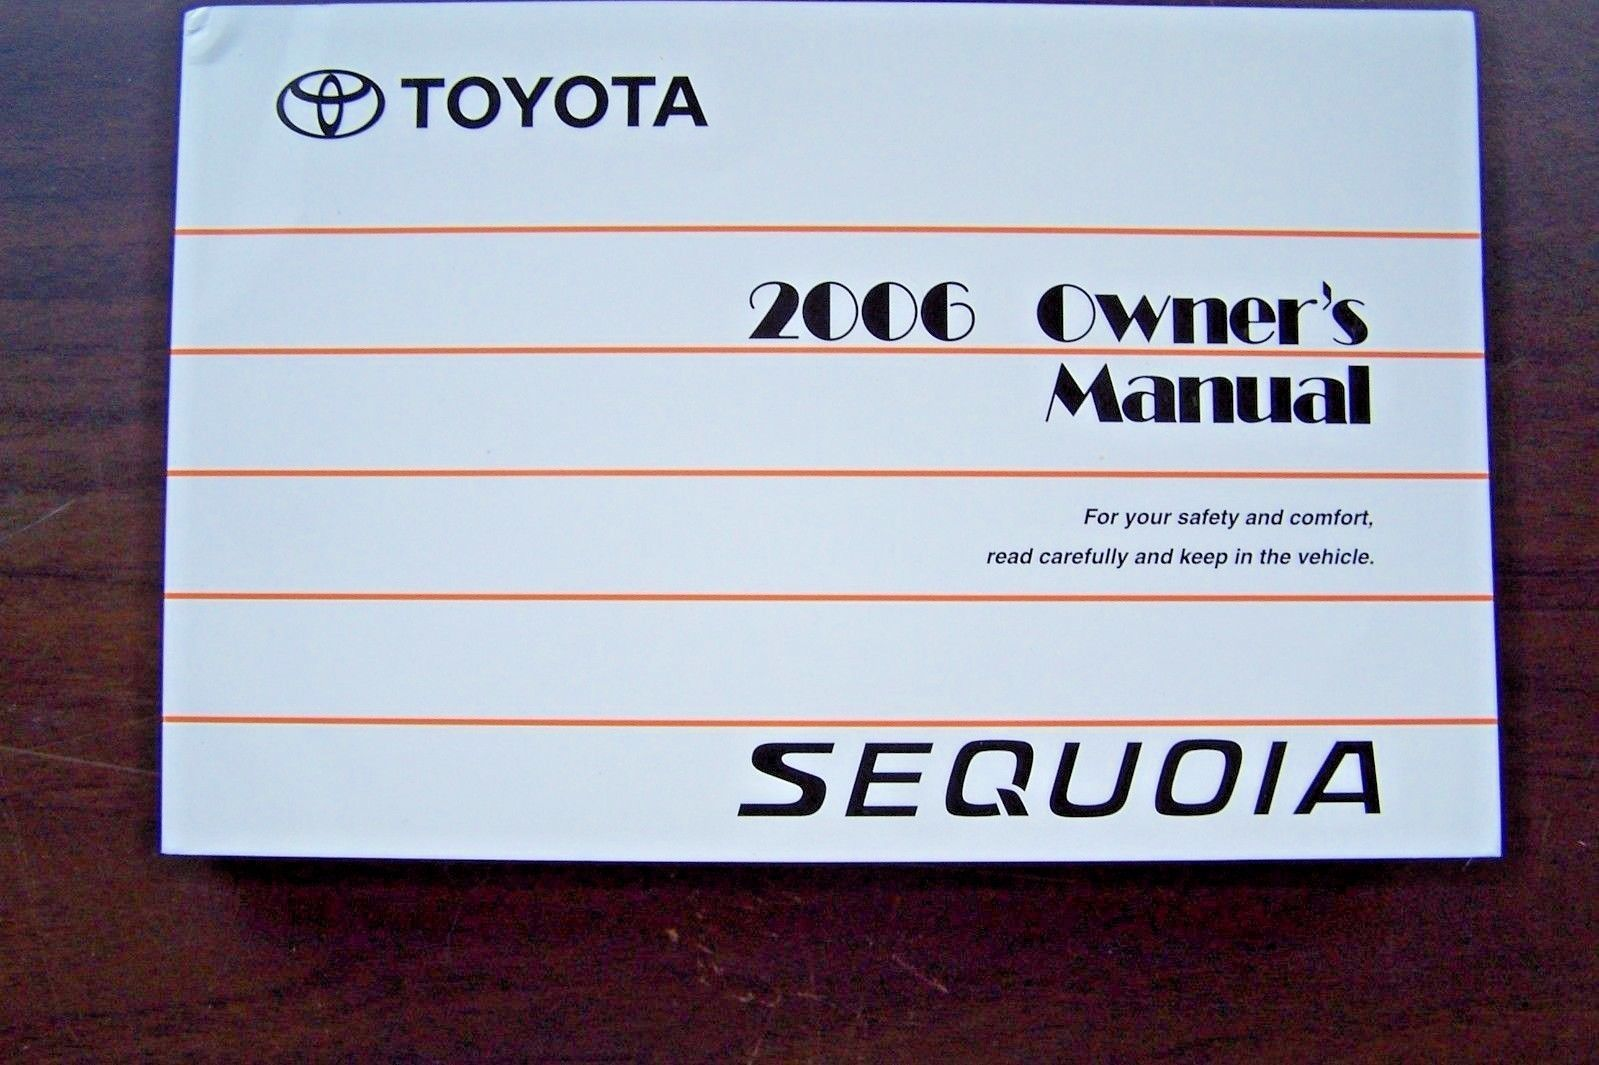 2000 toyota sequoia owners manual new and 50 similar items rh bonanza com 2007 Toyota Sequoia 2005 toyota sequoia owners manual